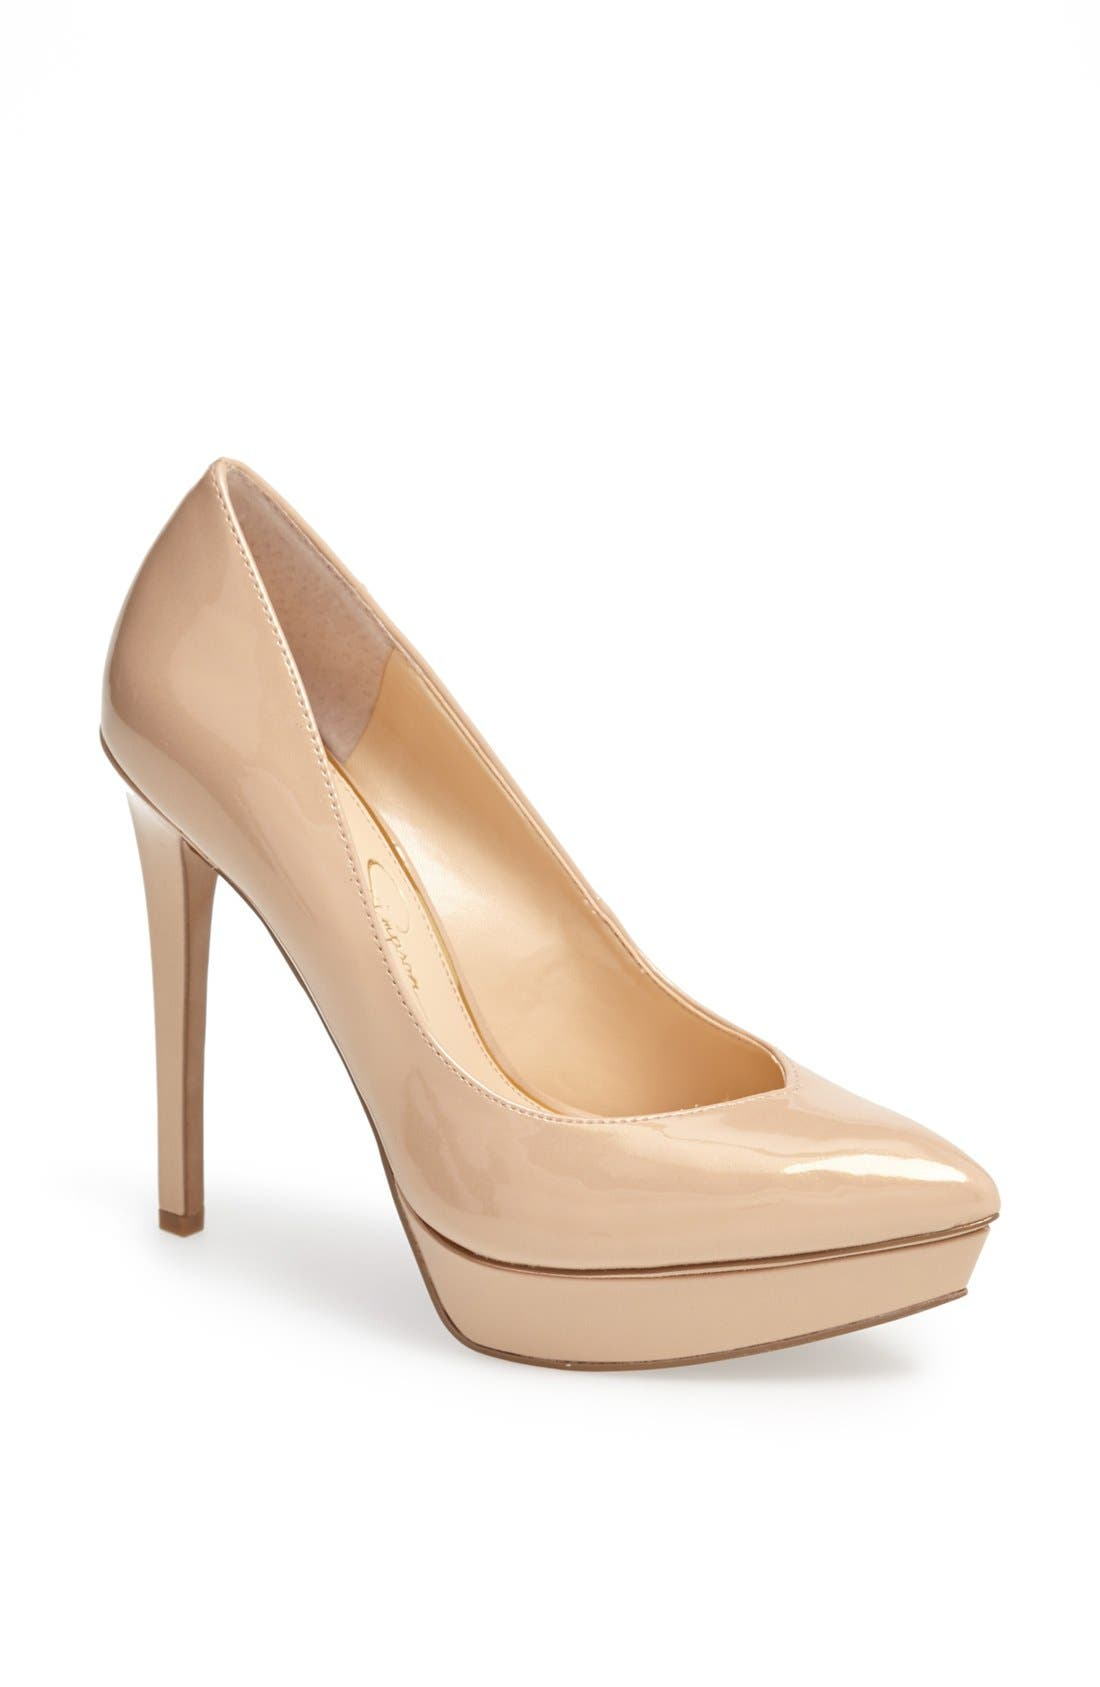 Alternate Image 1 Selected - Jessica Simpson 'Venisse' Platform Pump